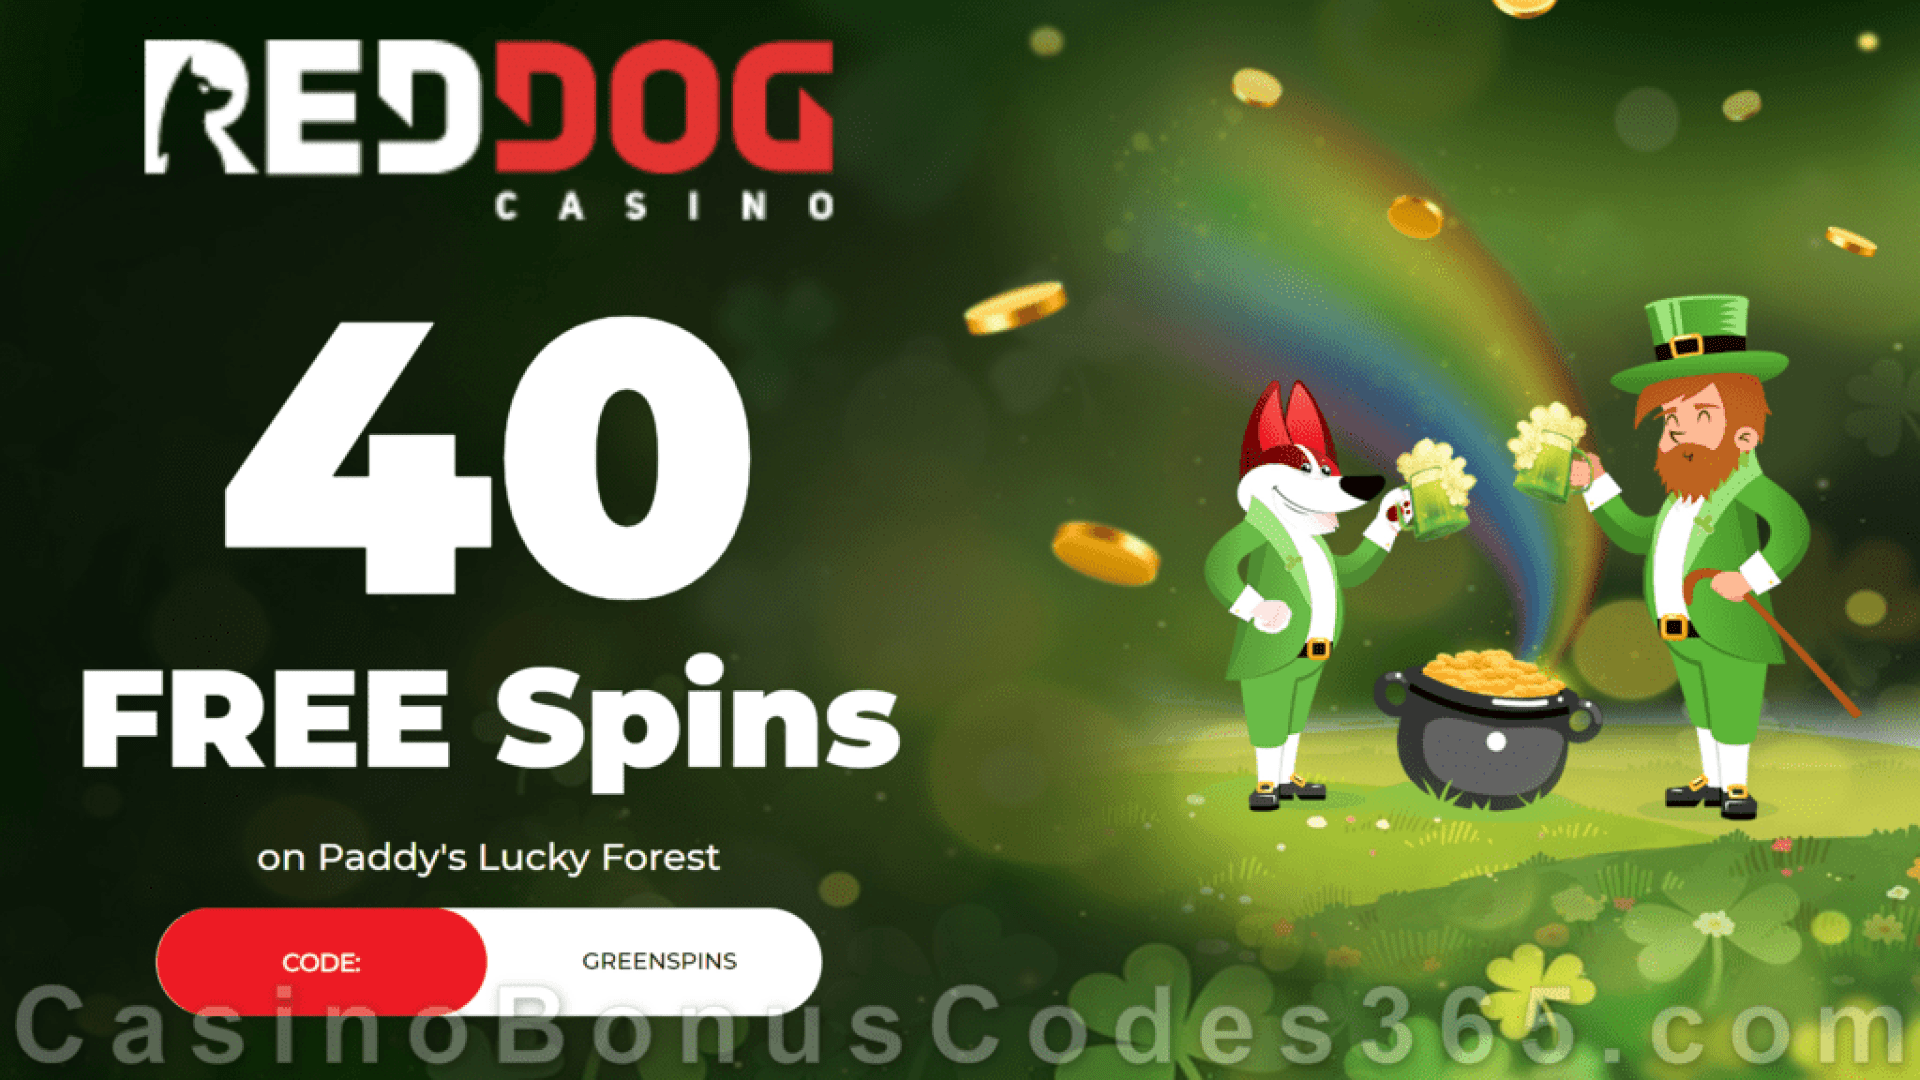 Red Dog Casino 40 FREE Paddy's Lucky Forest Spins Special NEW RTG Game No Deposit Offer